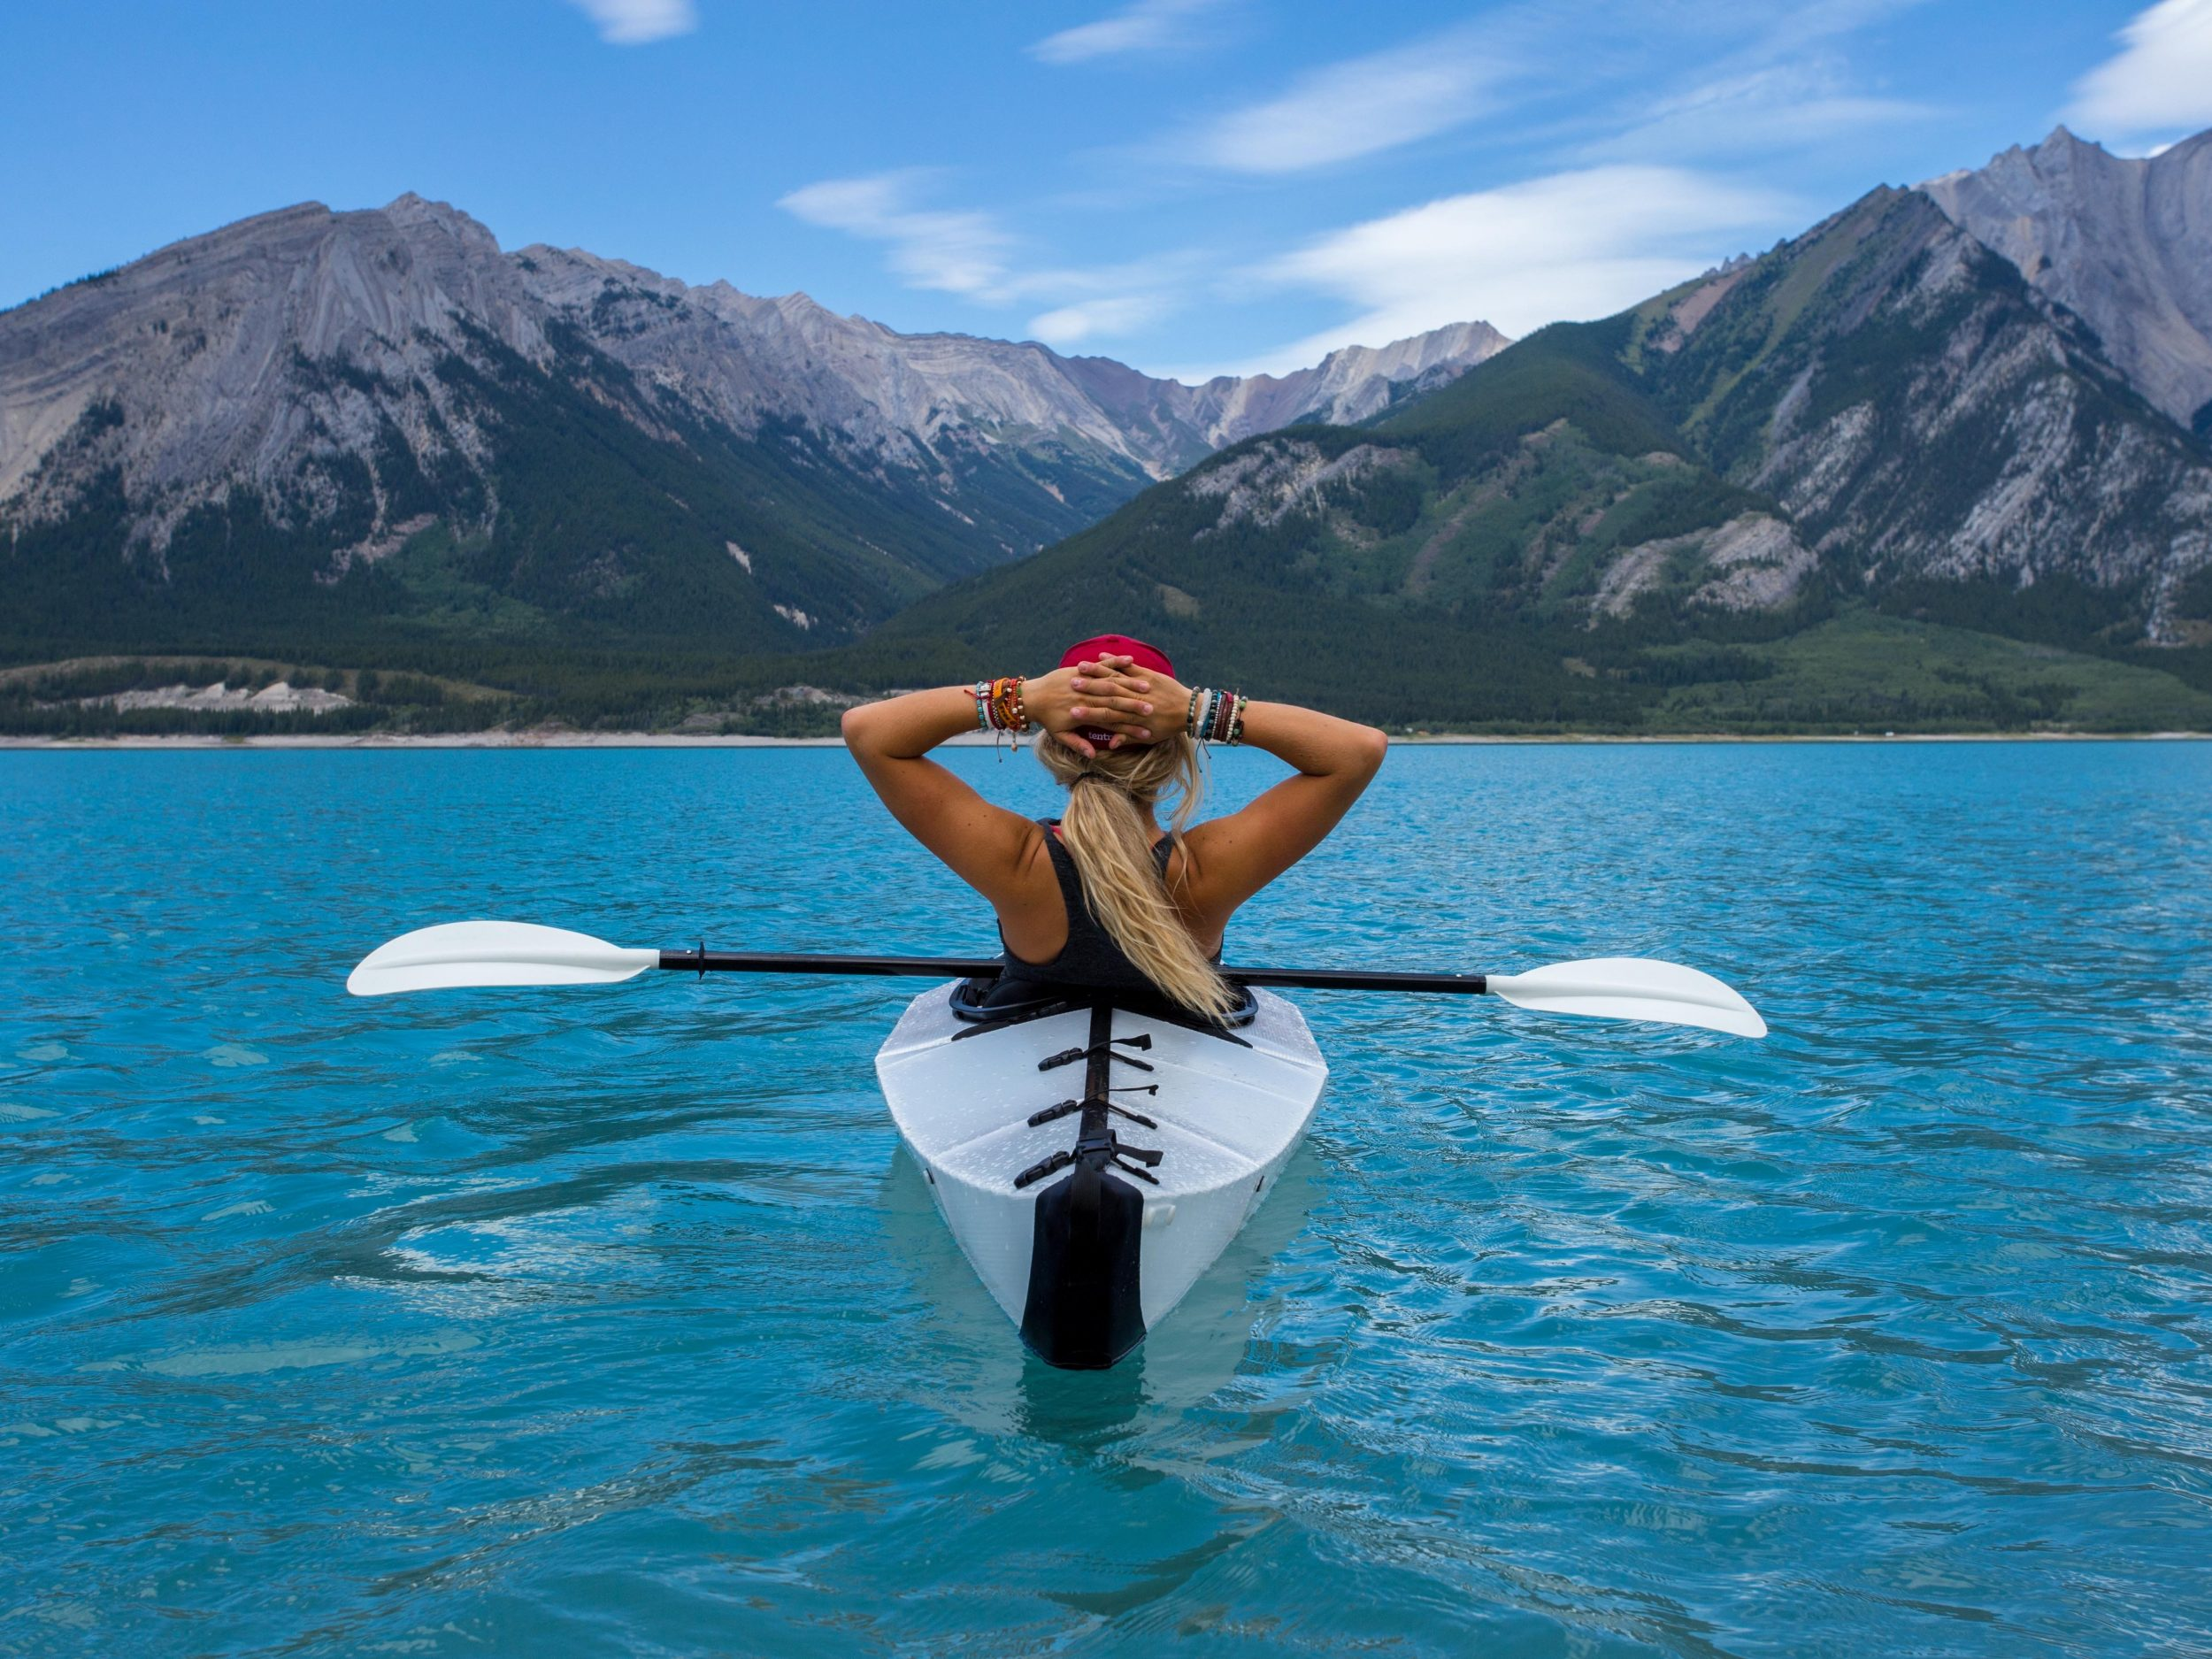 Woman in canoe on lake - image from Shopify store